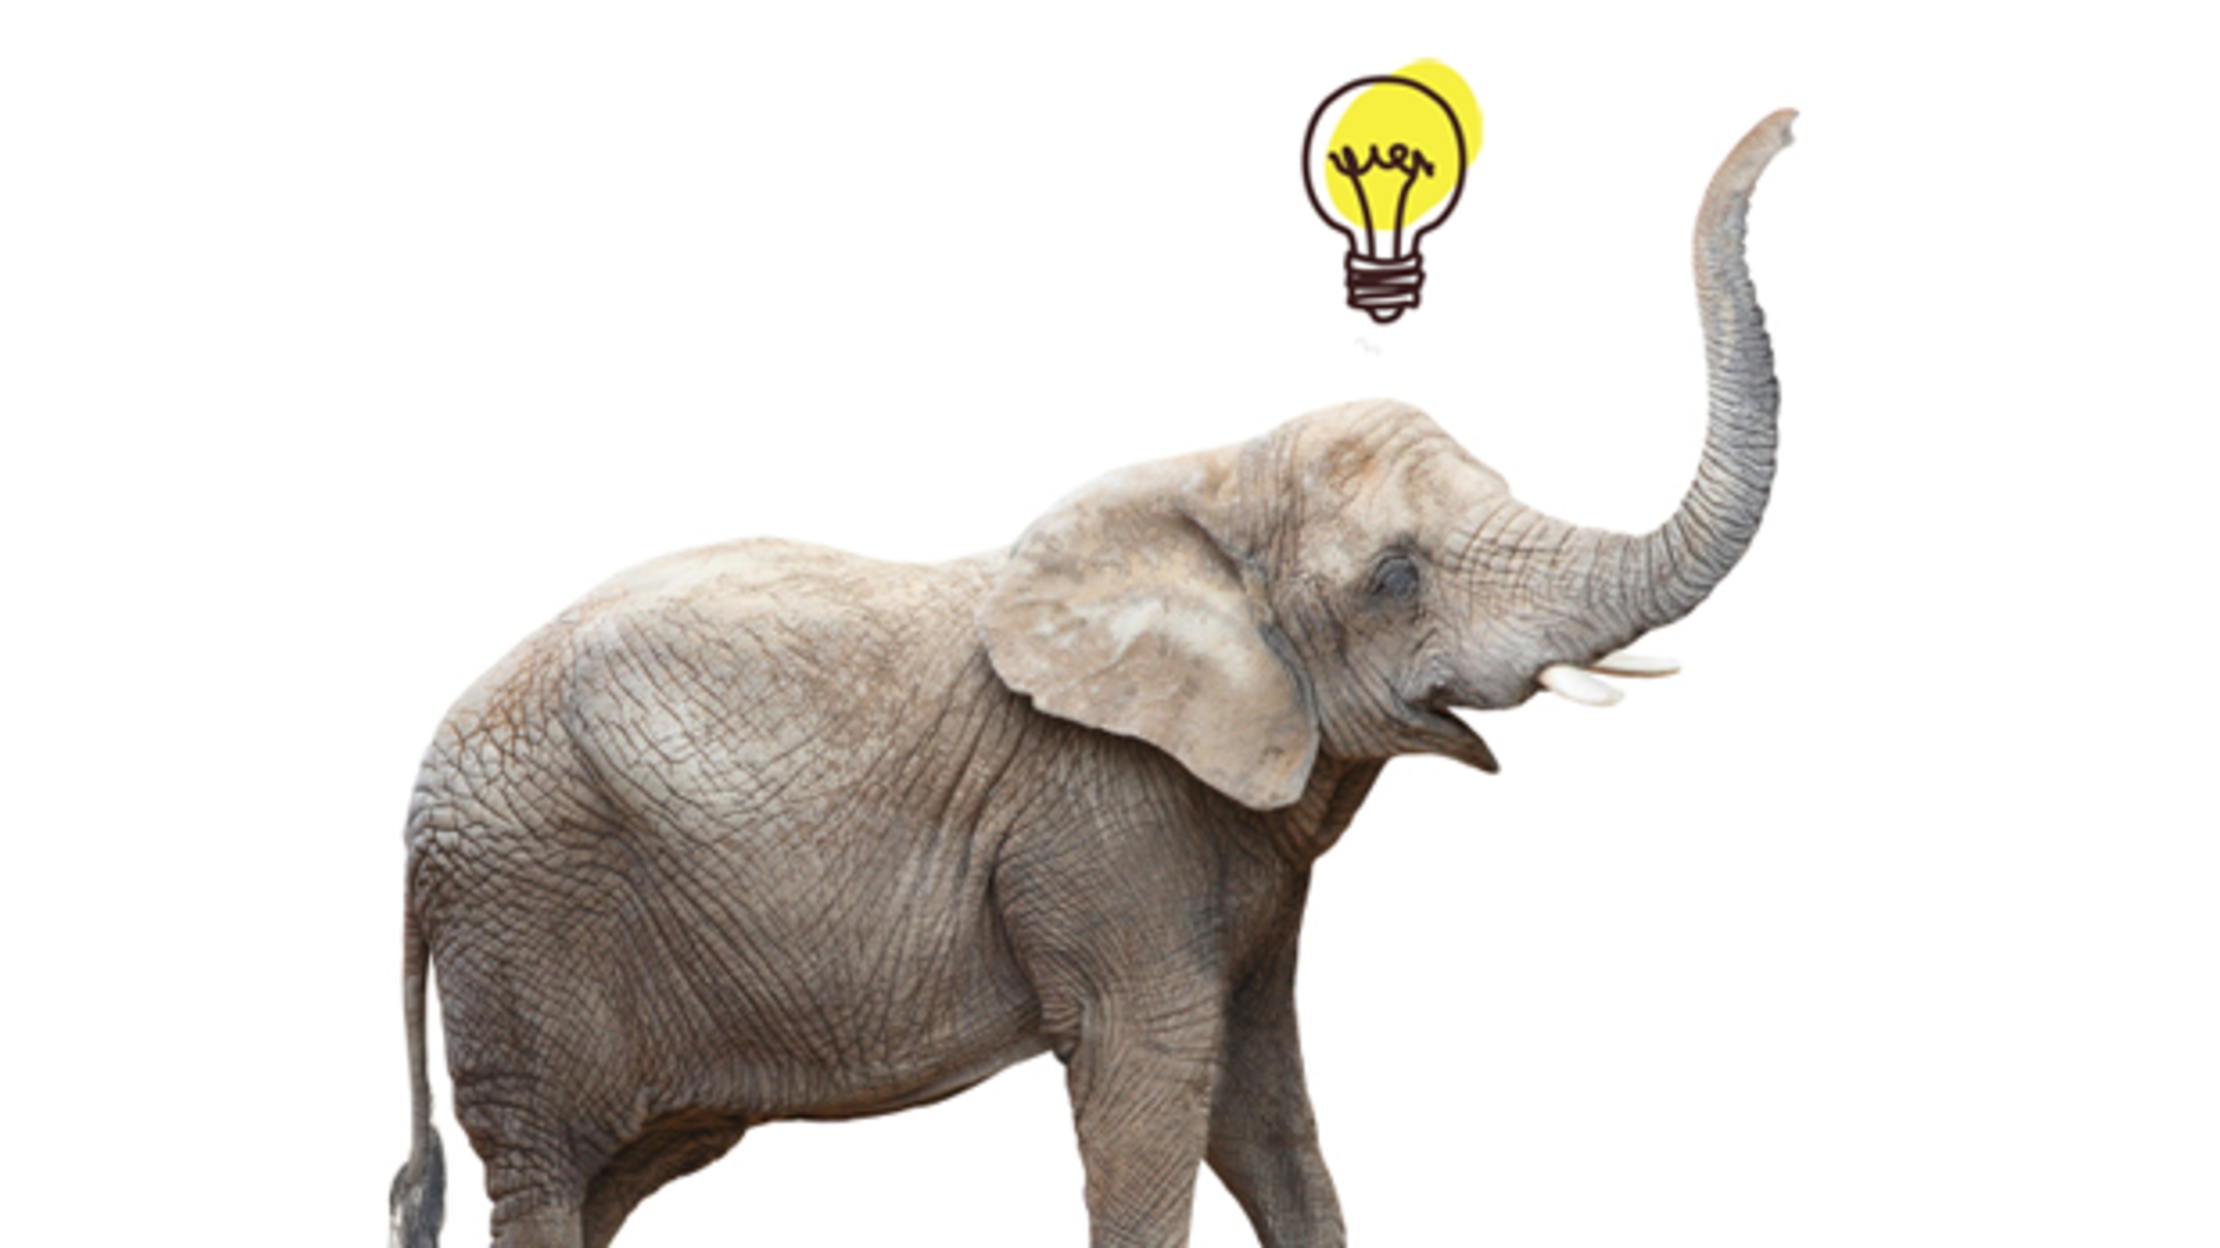 Elephant In Room That Needs To Be >> 7 Behaviors That Prove Elephants Are Incredibly Smart Mental Floss